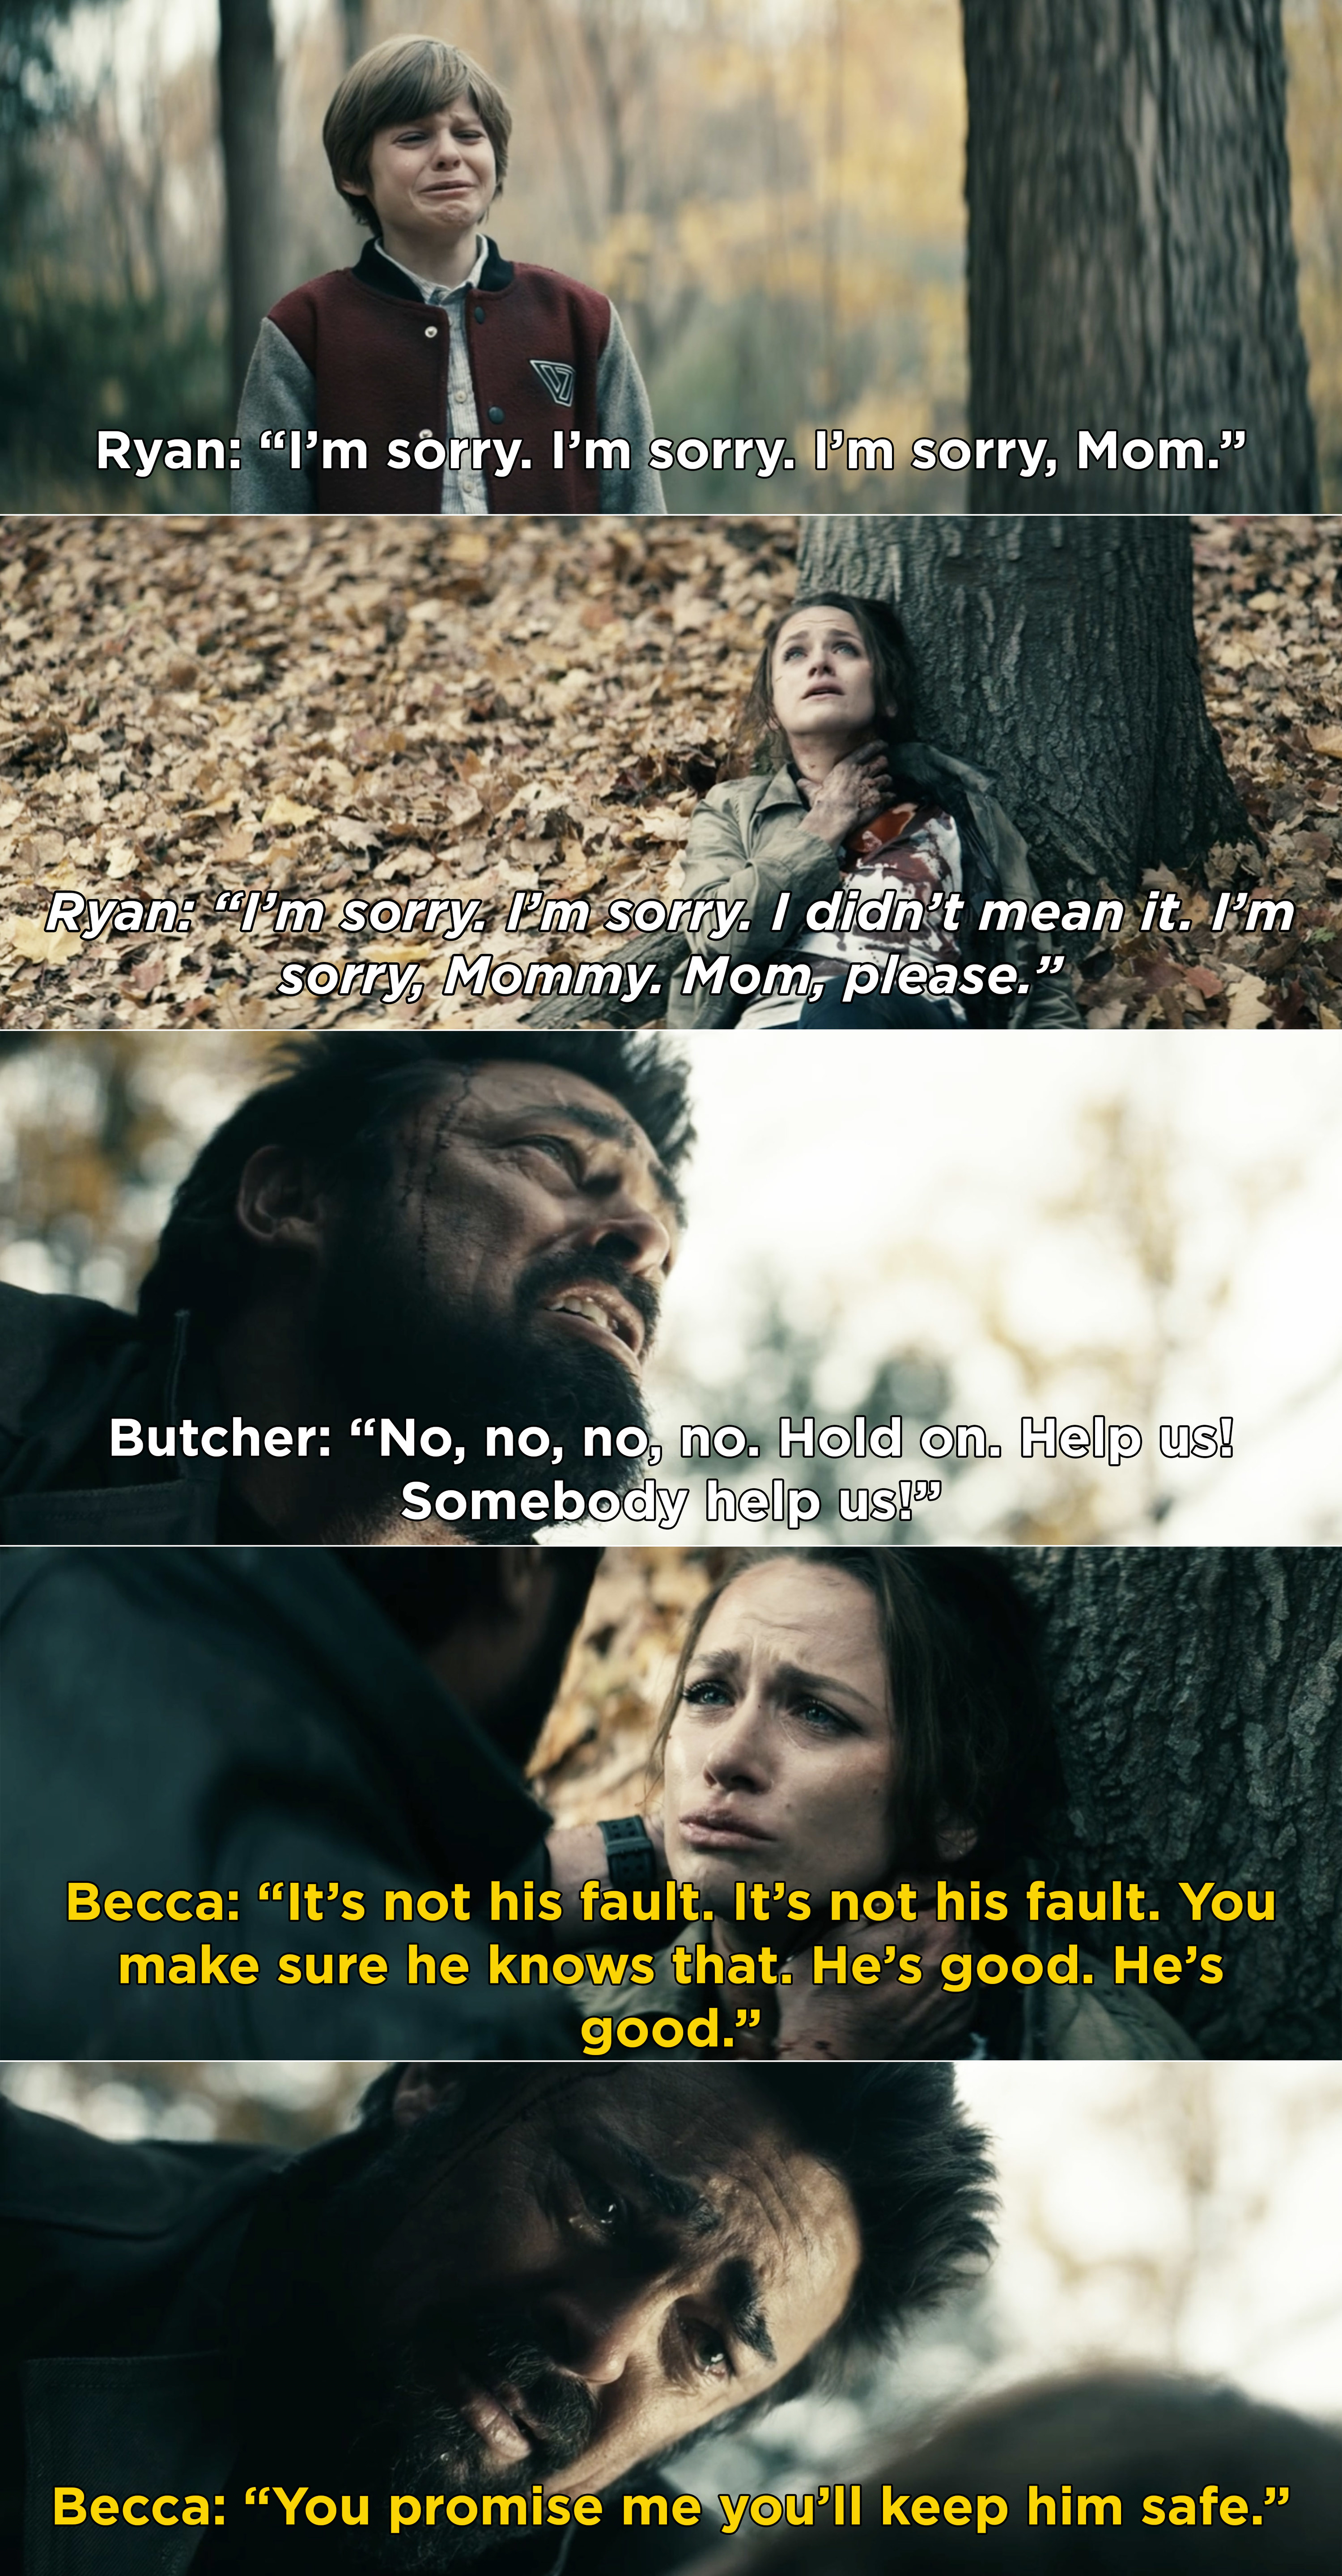 Becca telling Butcher that he needs to take care of Ryan no matter what